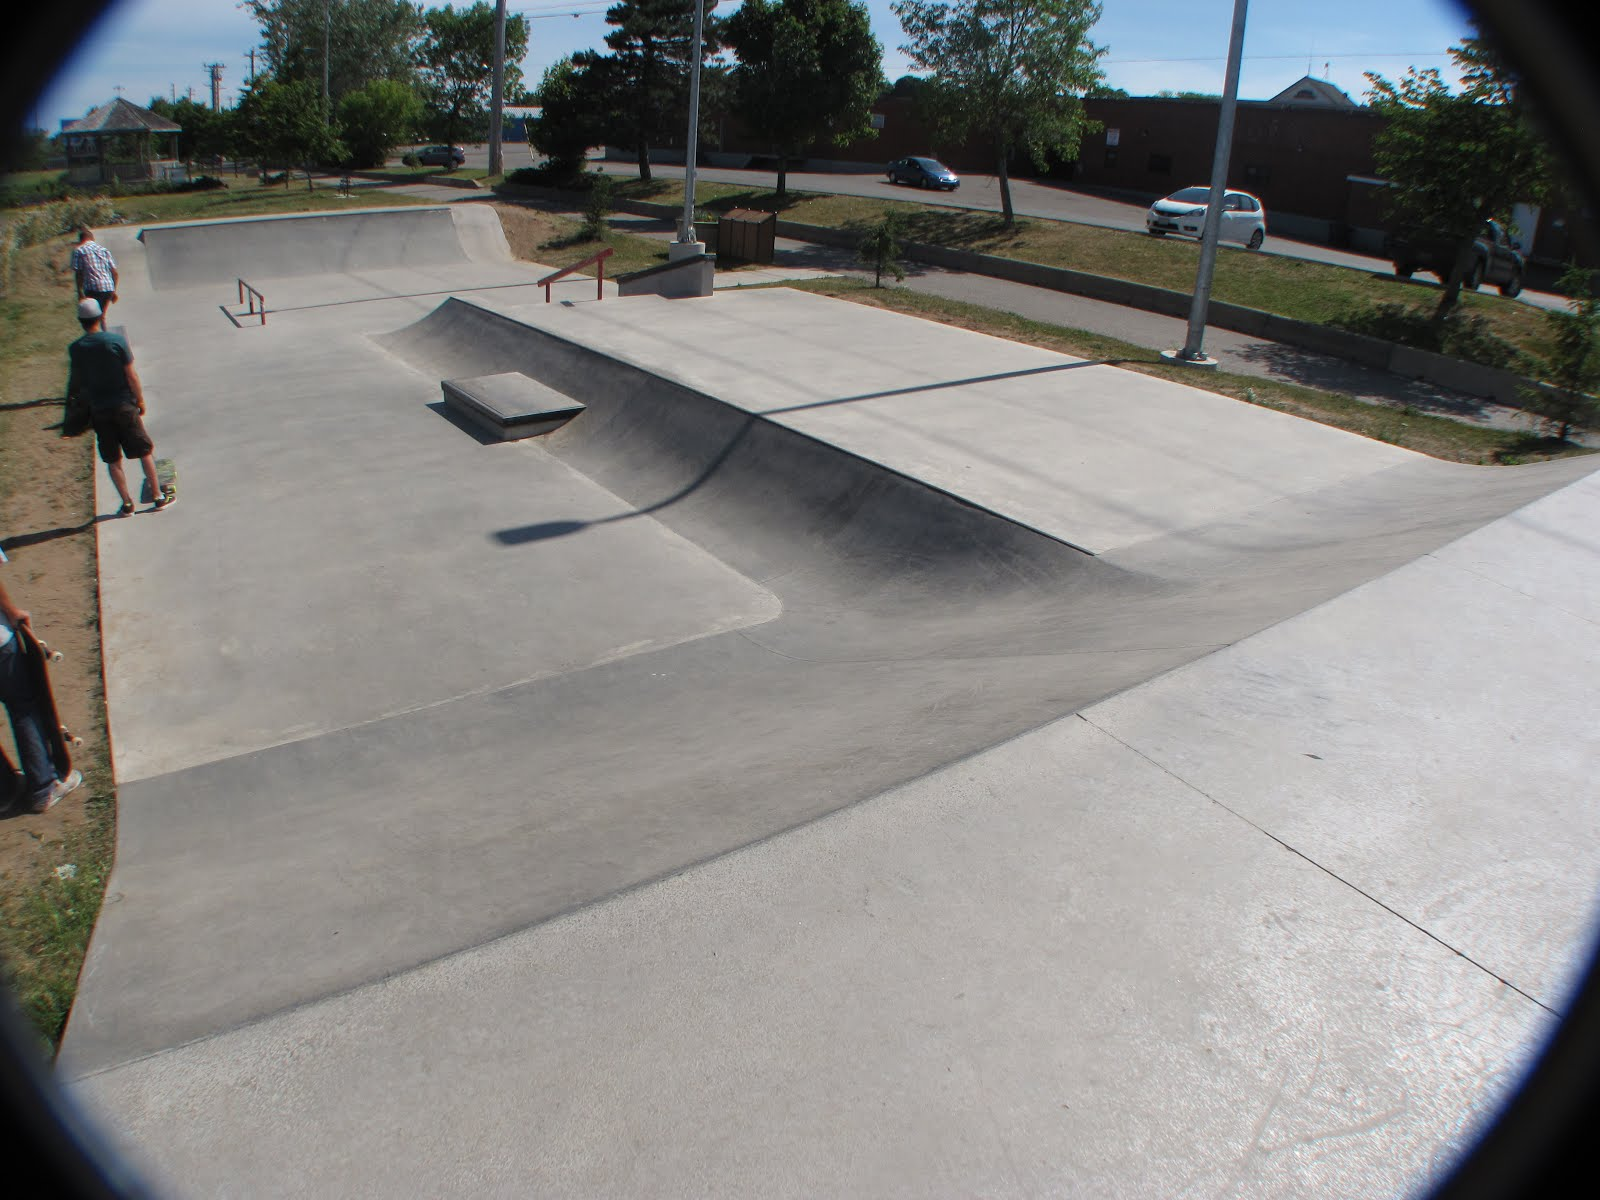 Phillips Skate Spot Newark, DE